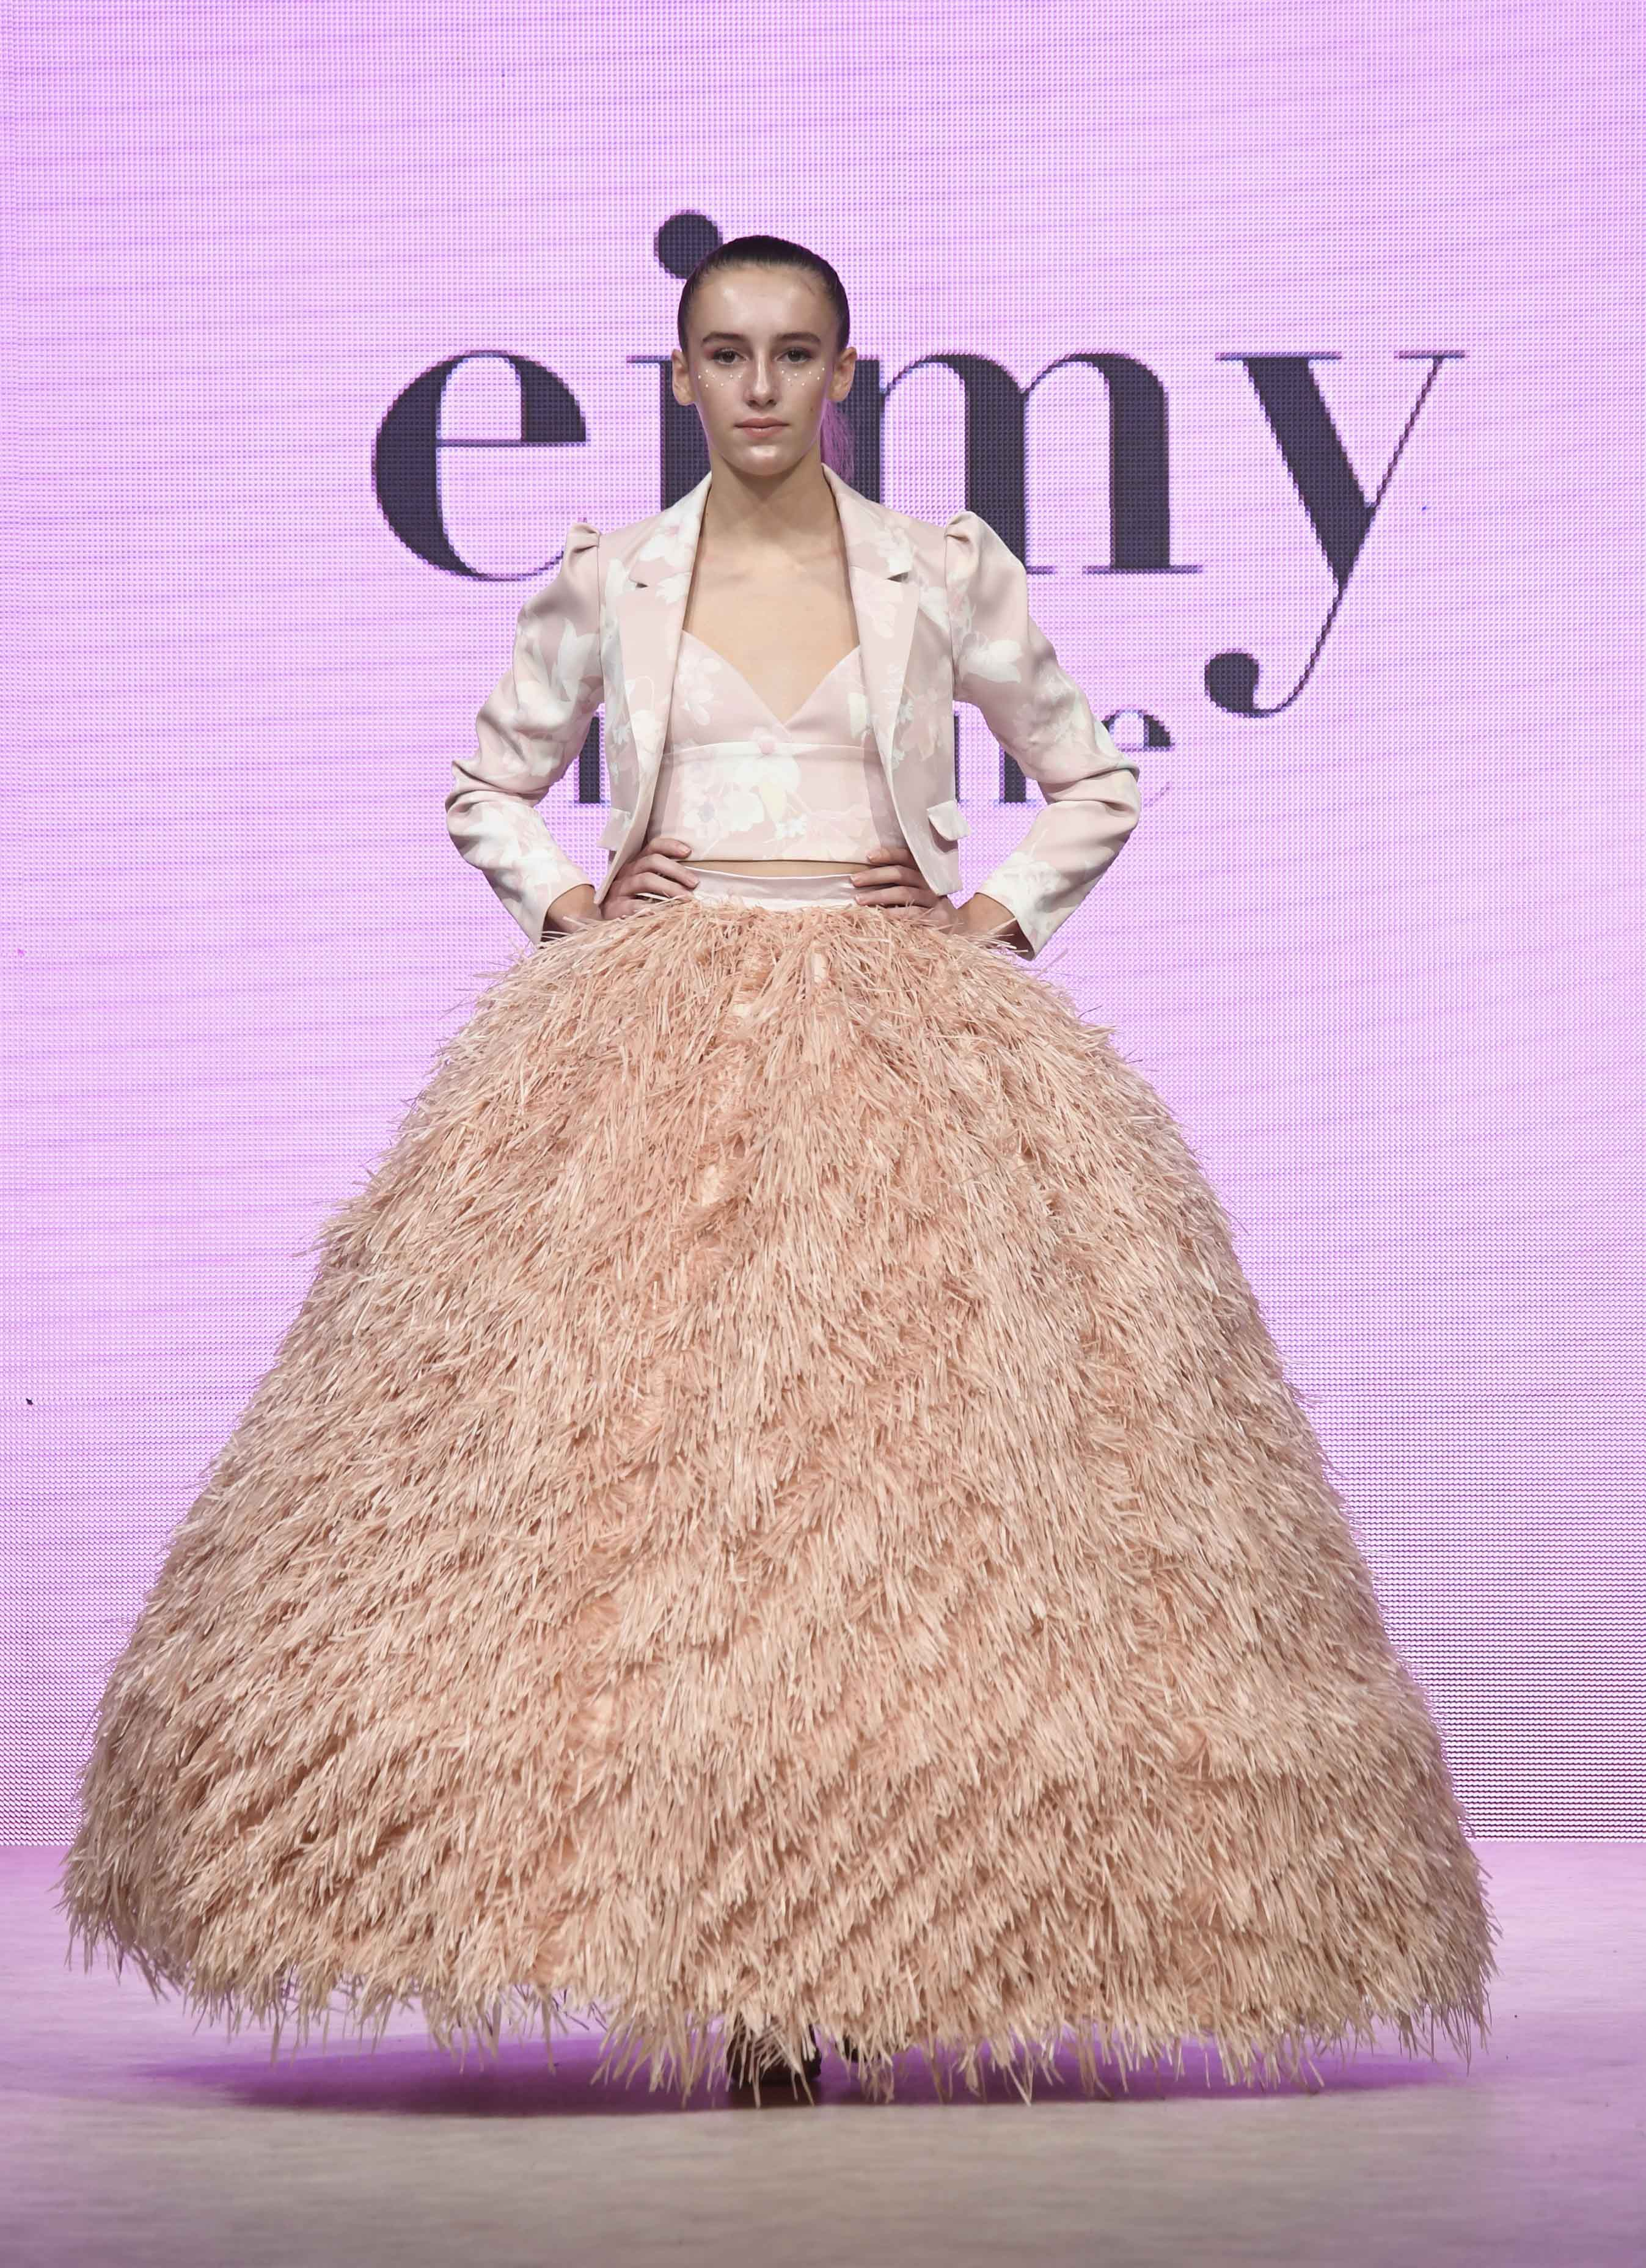 VANCOUVER, BC - SEPTEMBER 22:  A model walks the runway wearing eimy istoire at Vancouver Fashion Week Spring/Summer 19 - Day 6on September 22, 2018 in Vancouver, Canada.  (Photo by Arun Nevader/Getty Images for VFW Management INC)